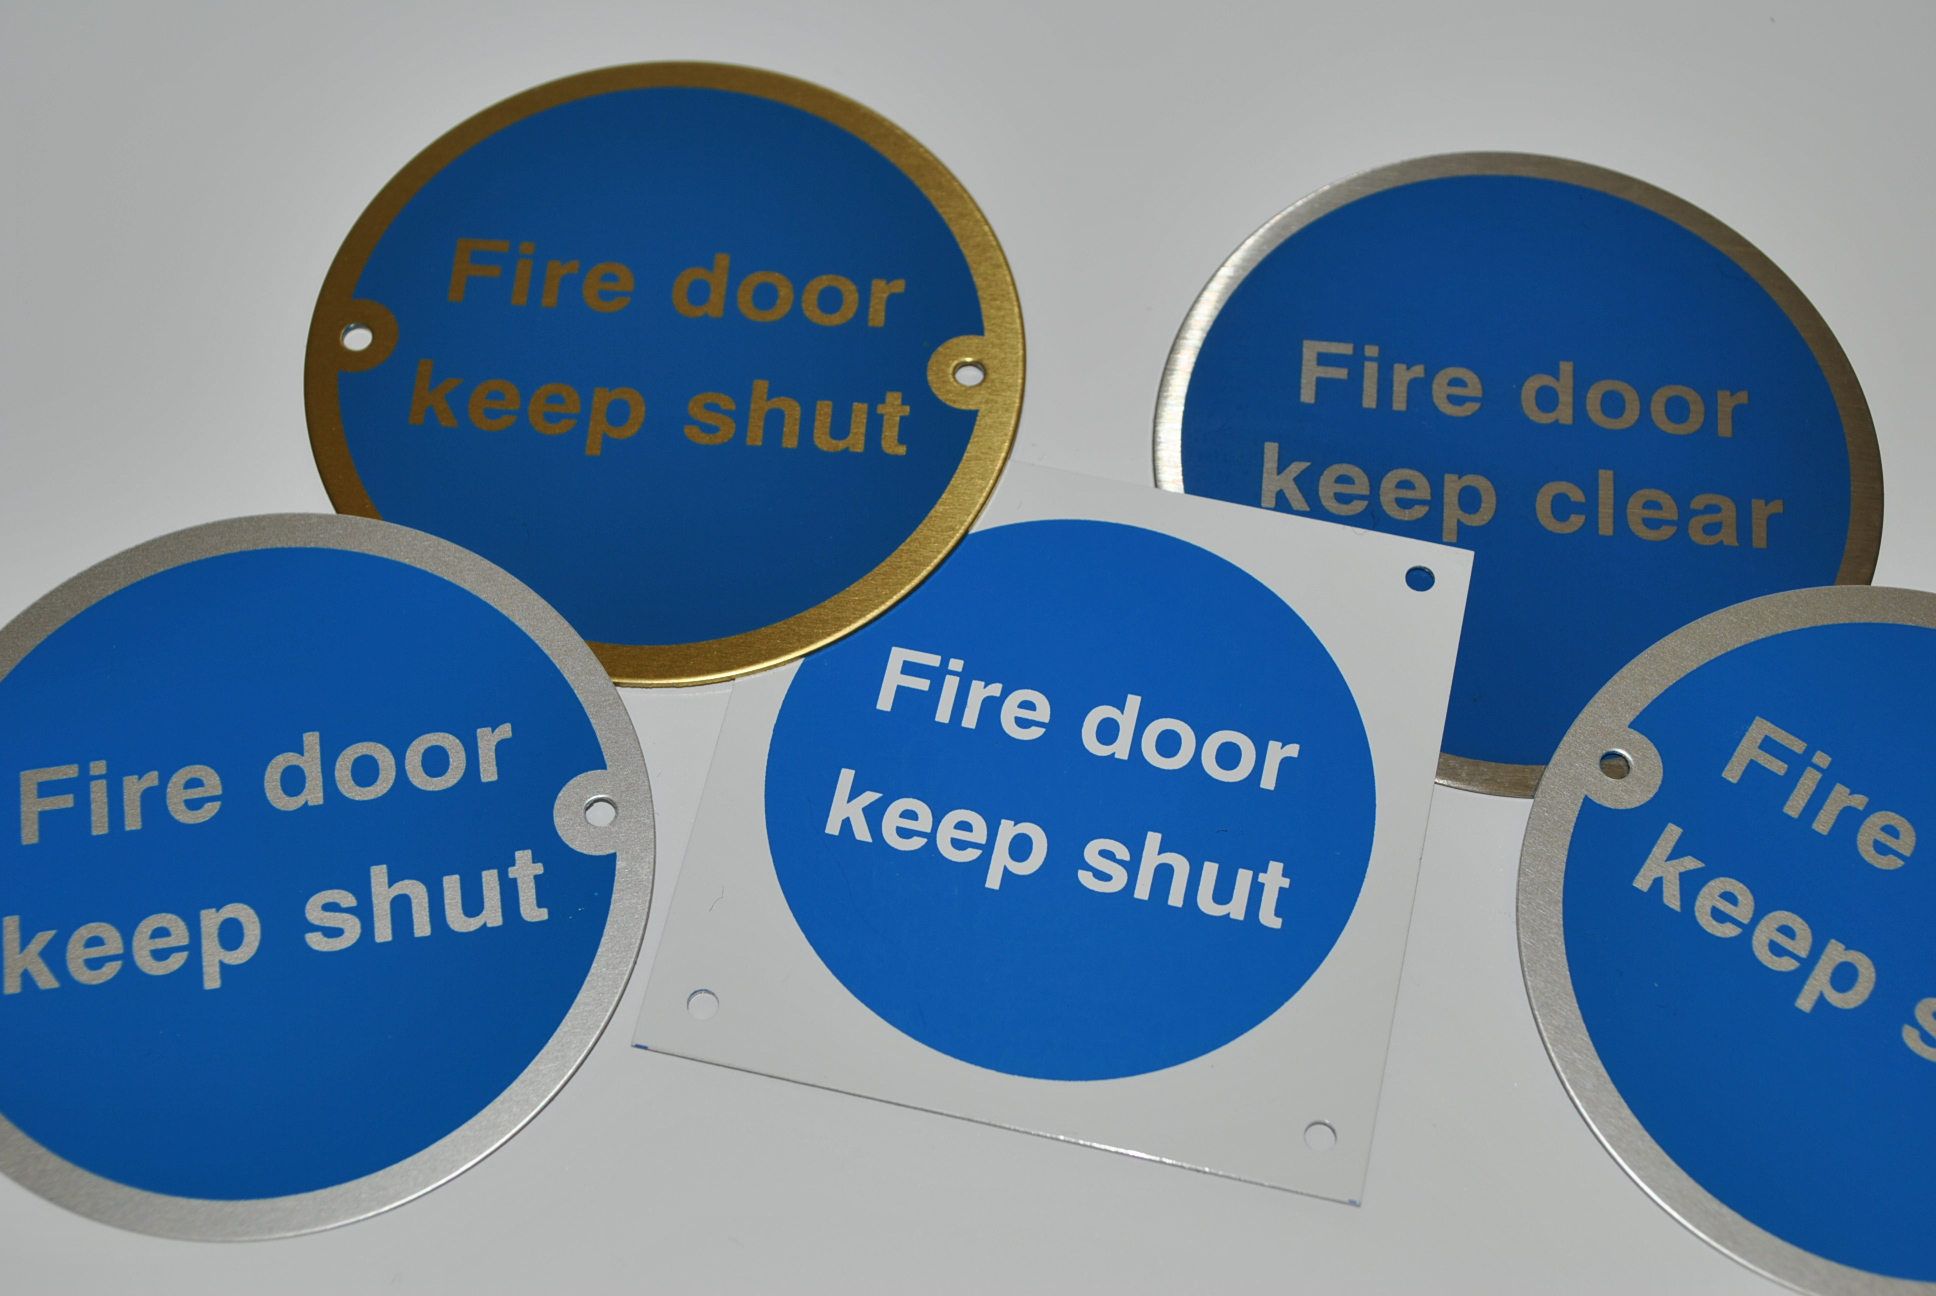 Fire door, keep shut